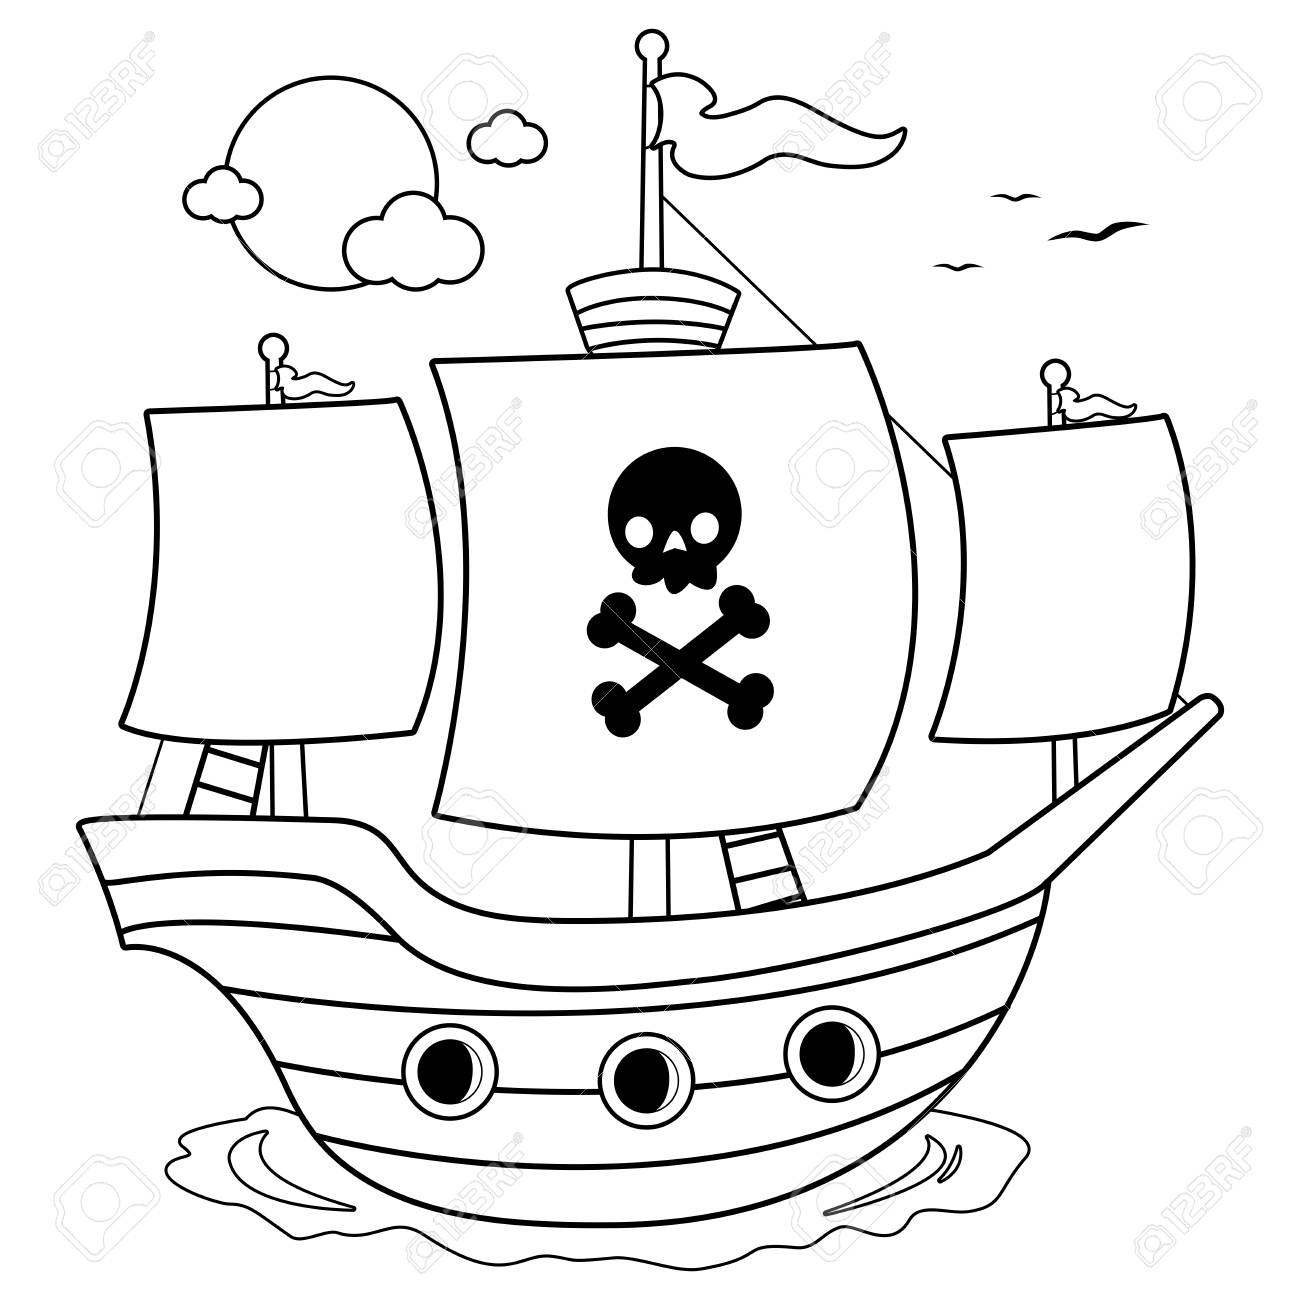 Pirate ship. Black and white coloring book page - 117694223